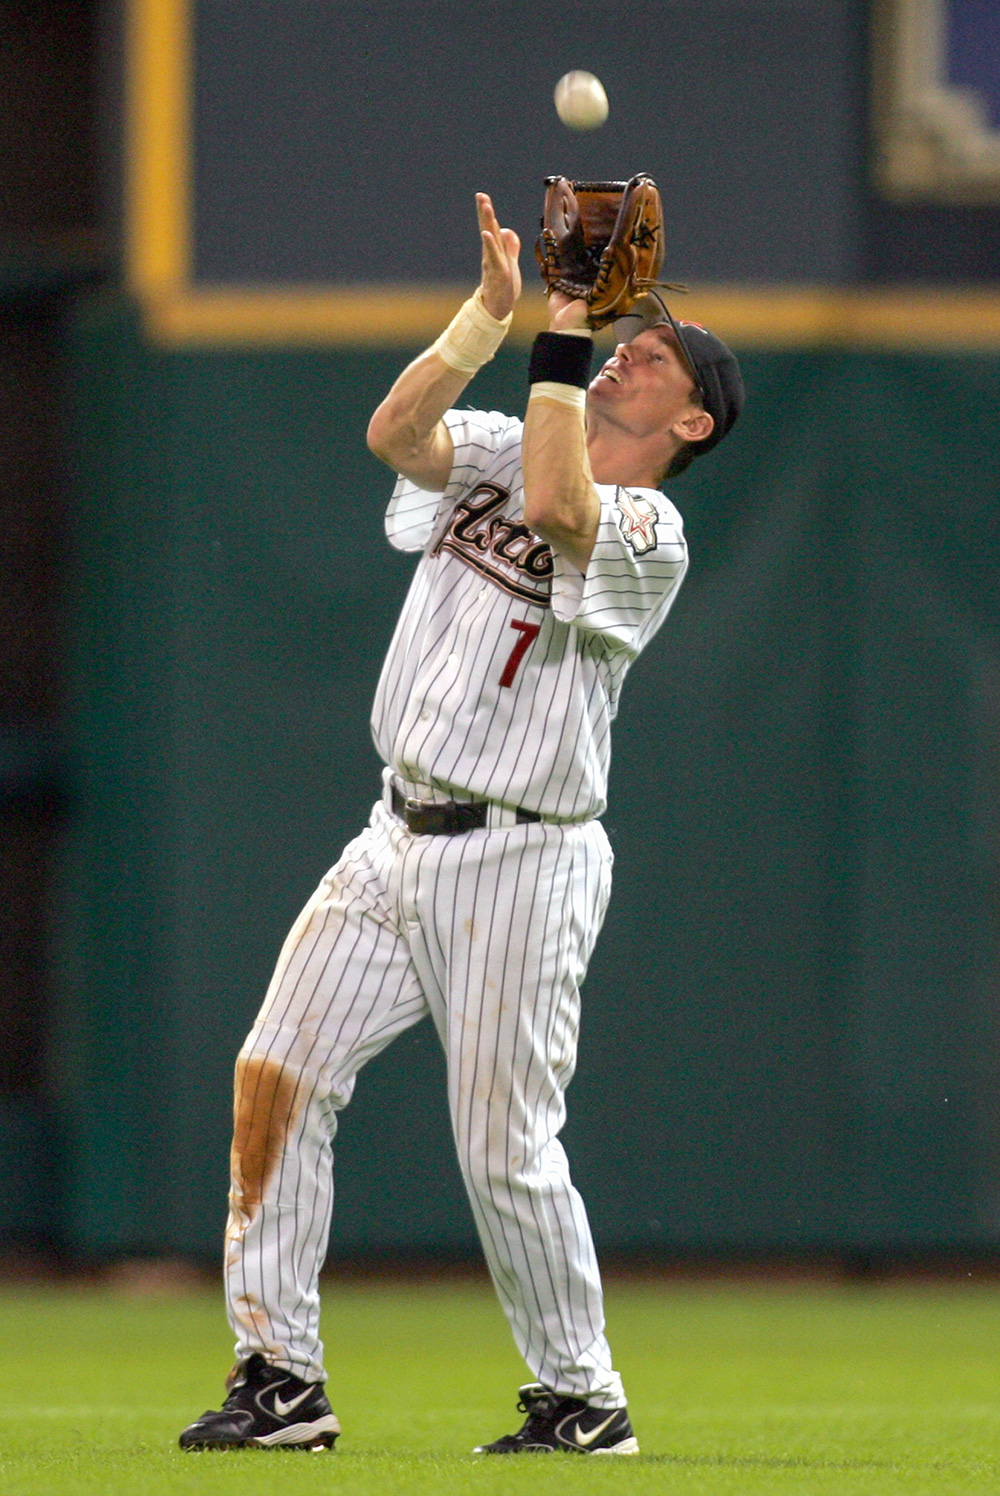 Take a look back at Craig Biggio's road to Cooperstown